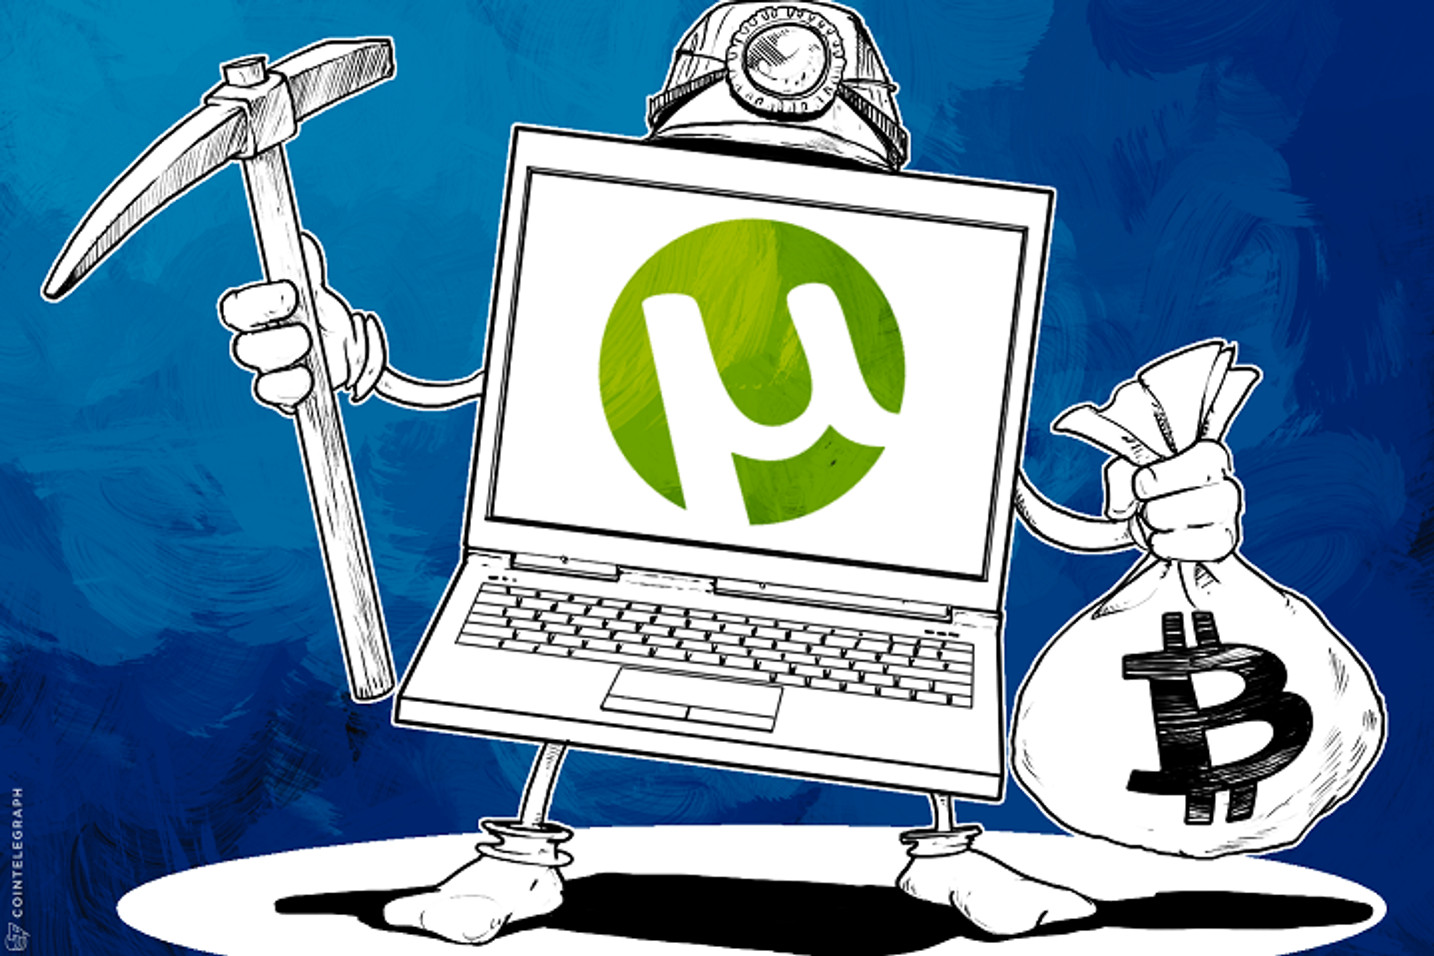 Did uTorrent's Mining Ware Blunder Give Bitcoin a 3000% Publicity Boost?